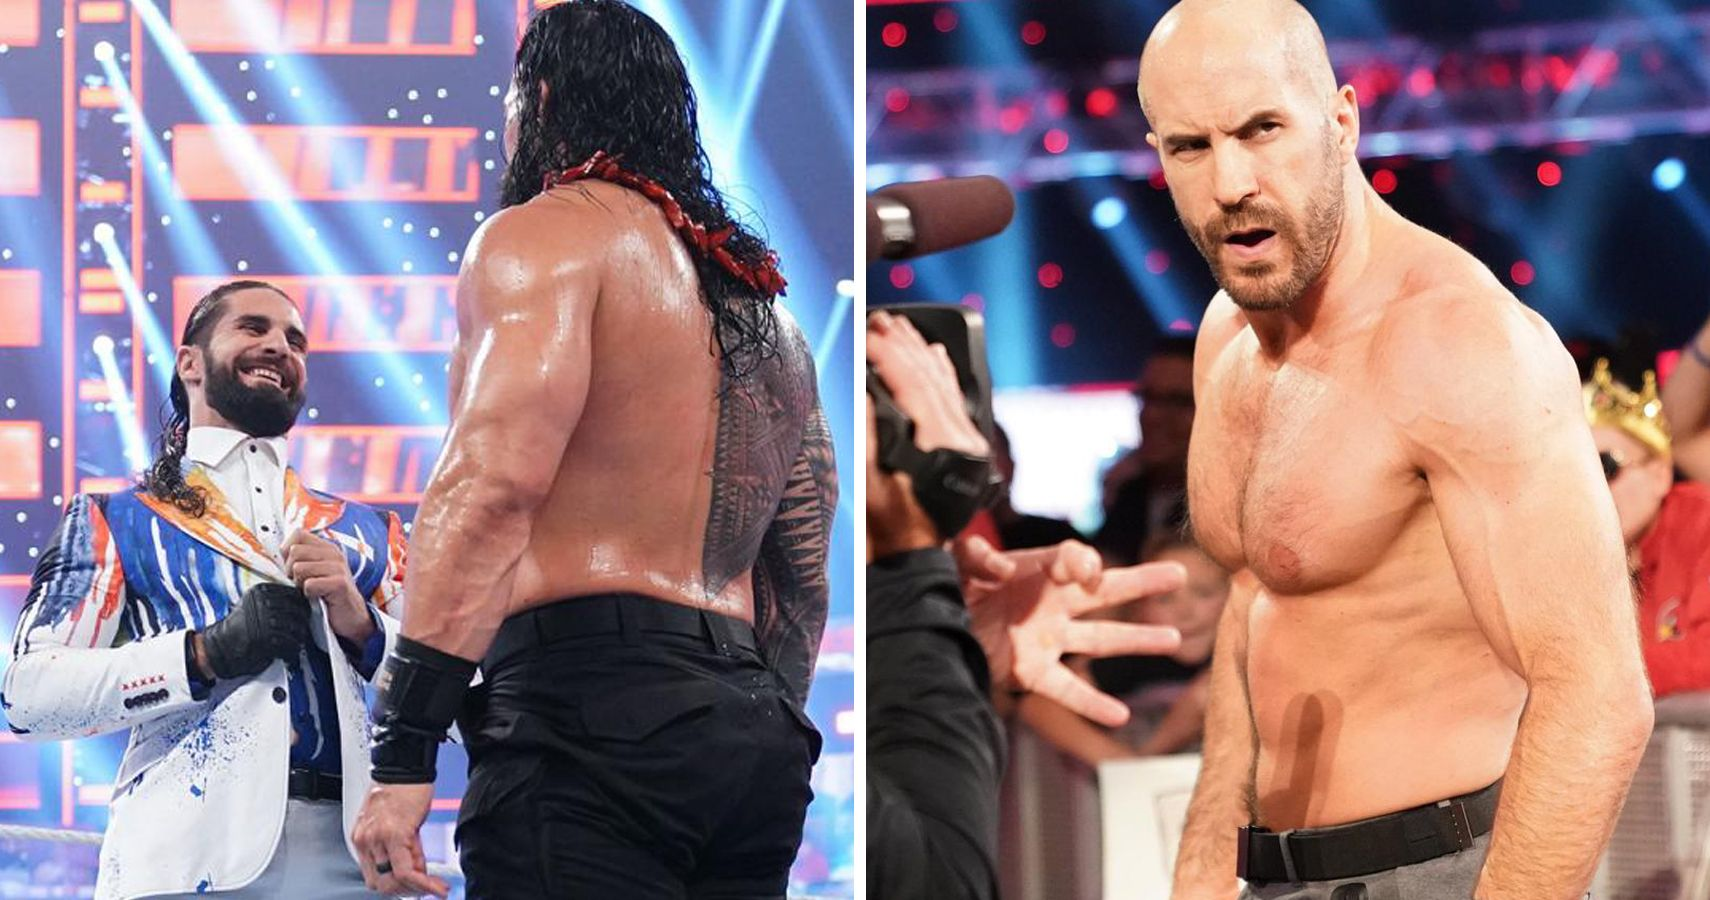 Rumored WWE Backstage Plans For Rollins vs. Reigns Hint Cesaro's Push Already Over